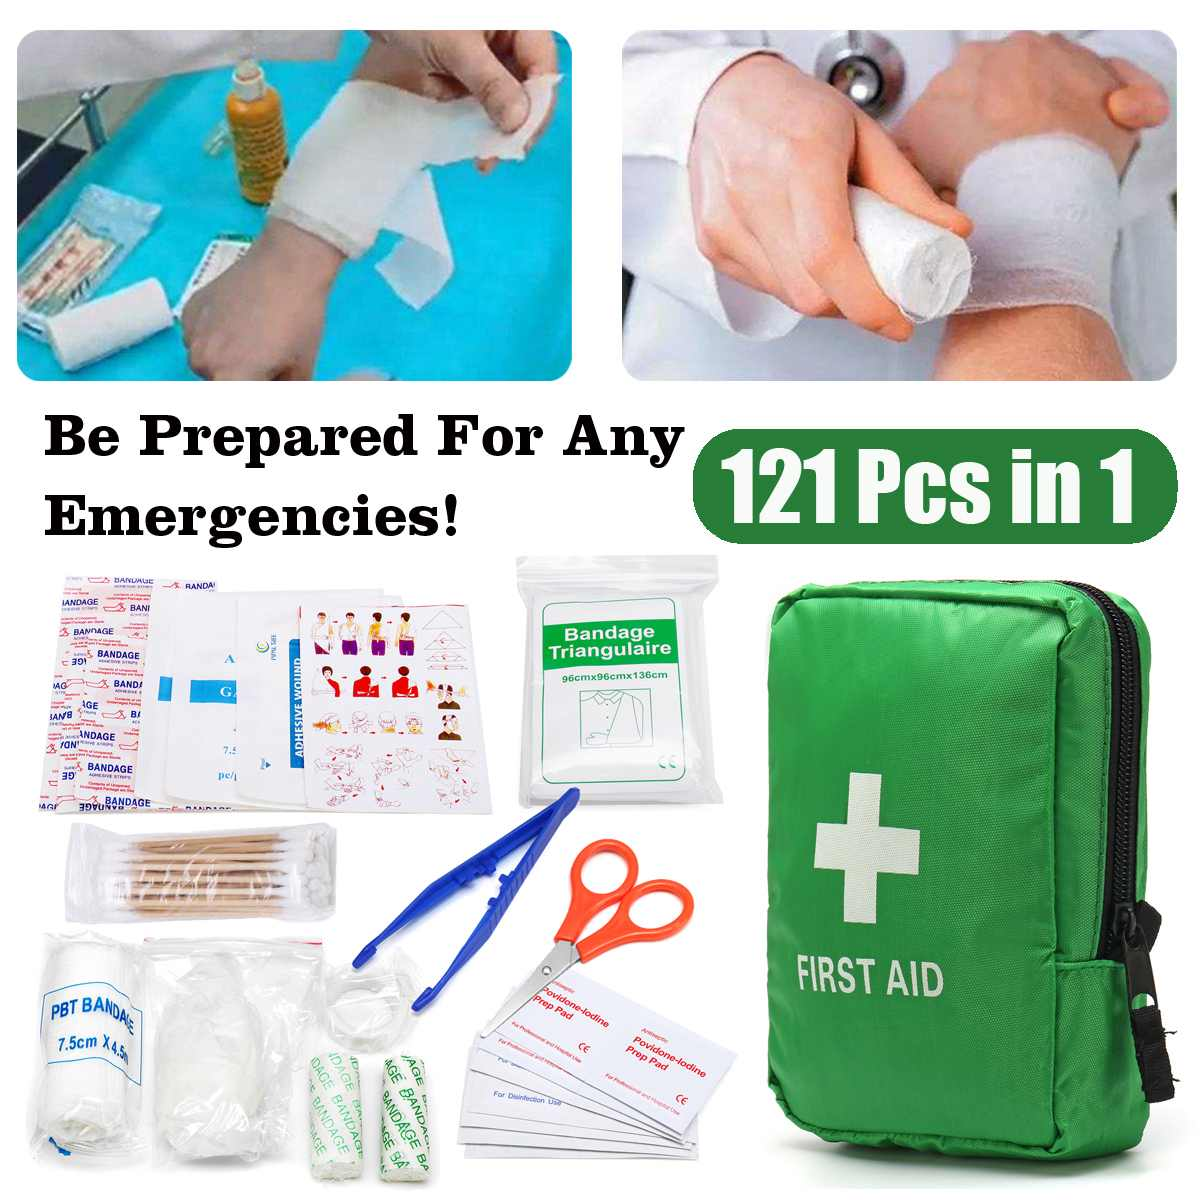 121Pcs Green Mini Safe Camping Hiking Car First Aid Bag Kit Medical Emergency Kit Treatment Pack Outdoor Wilderness Survival121Pcs Green Mini Safe Camping Hiking Car First Aid Bag Kit Medical Emergency Kit Treatment Pack Outdoor Wilderness Survival